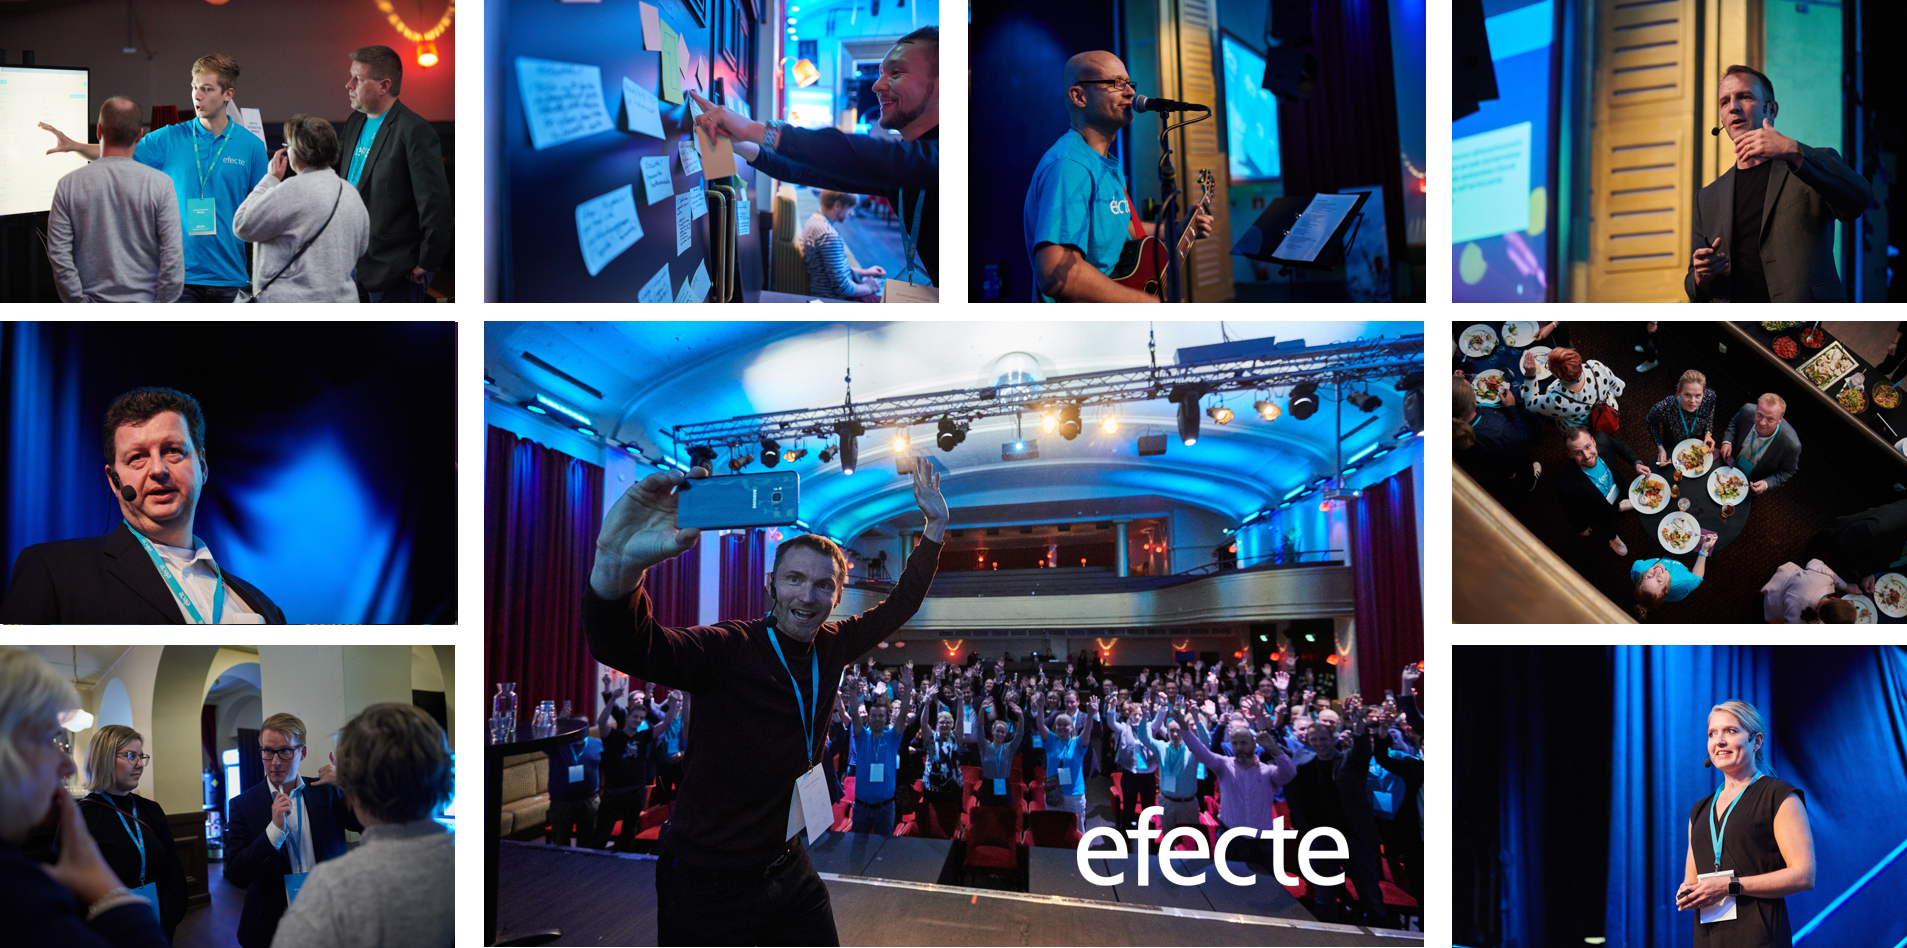 Efecte customer event